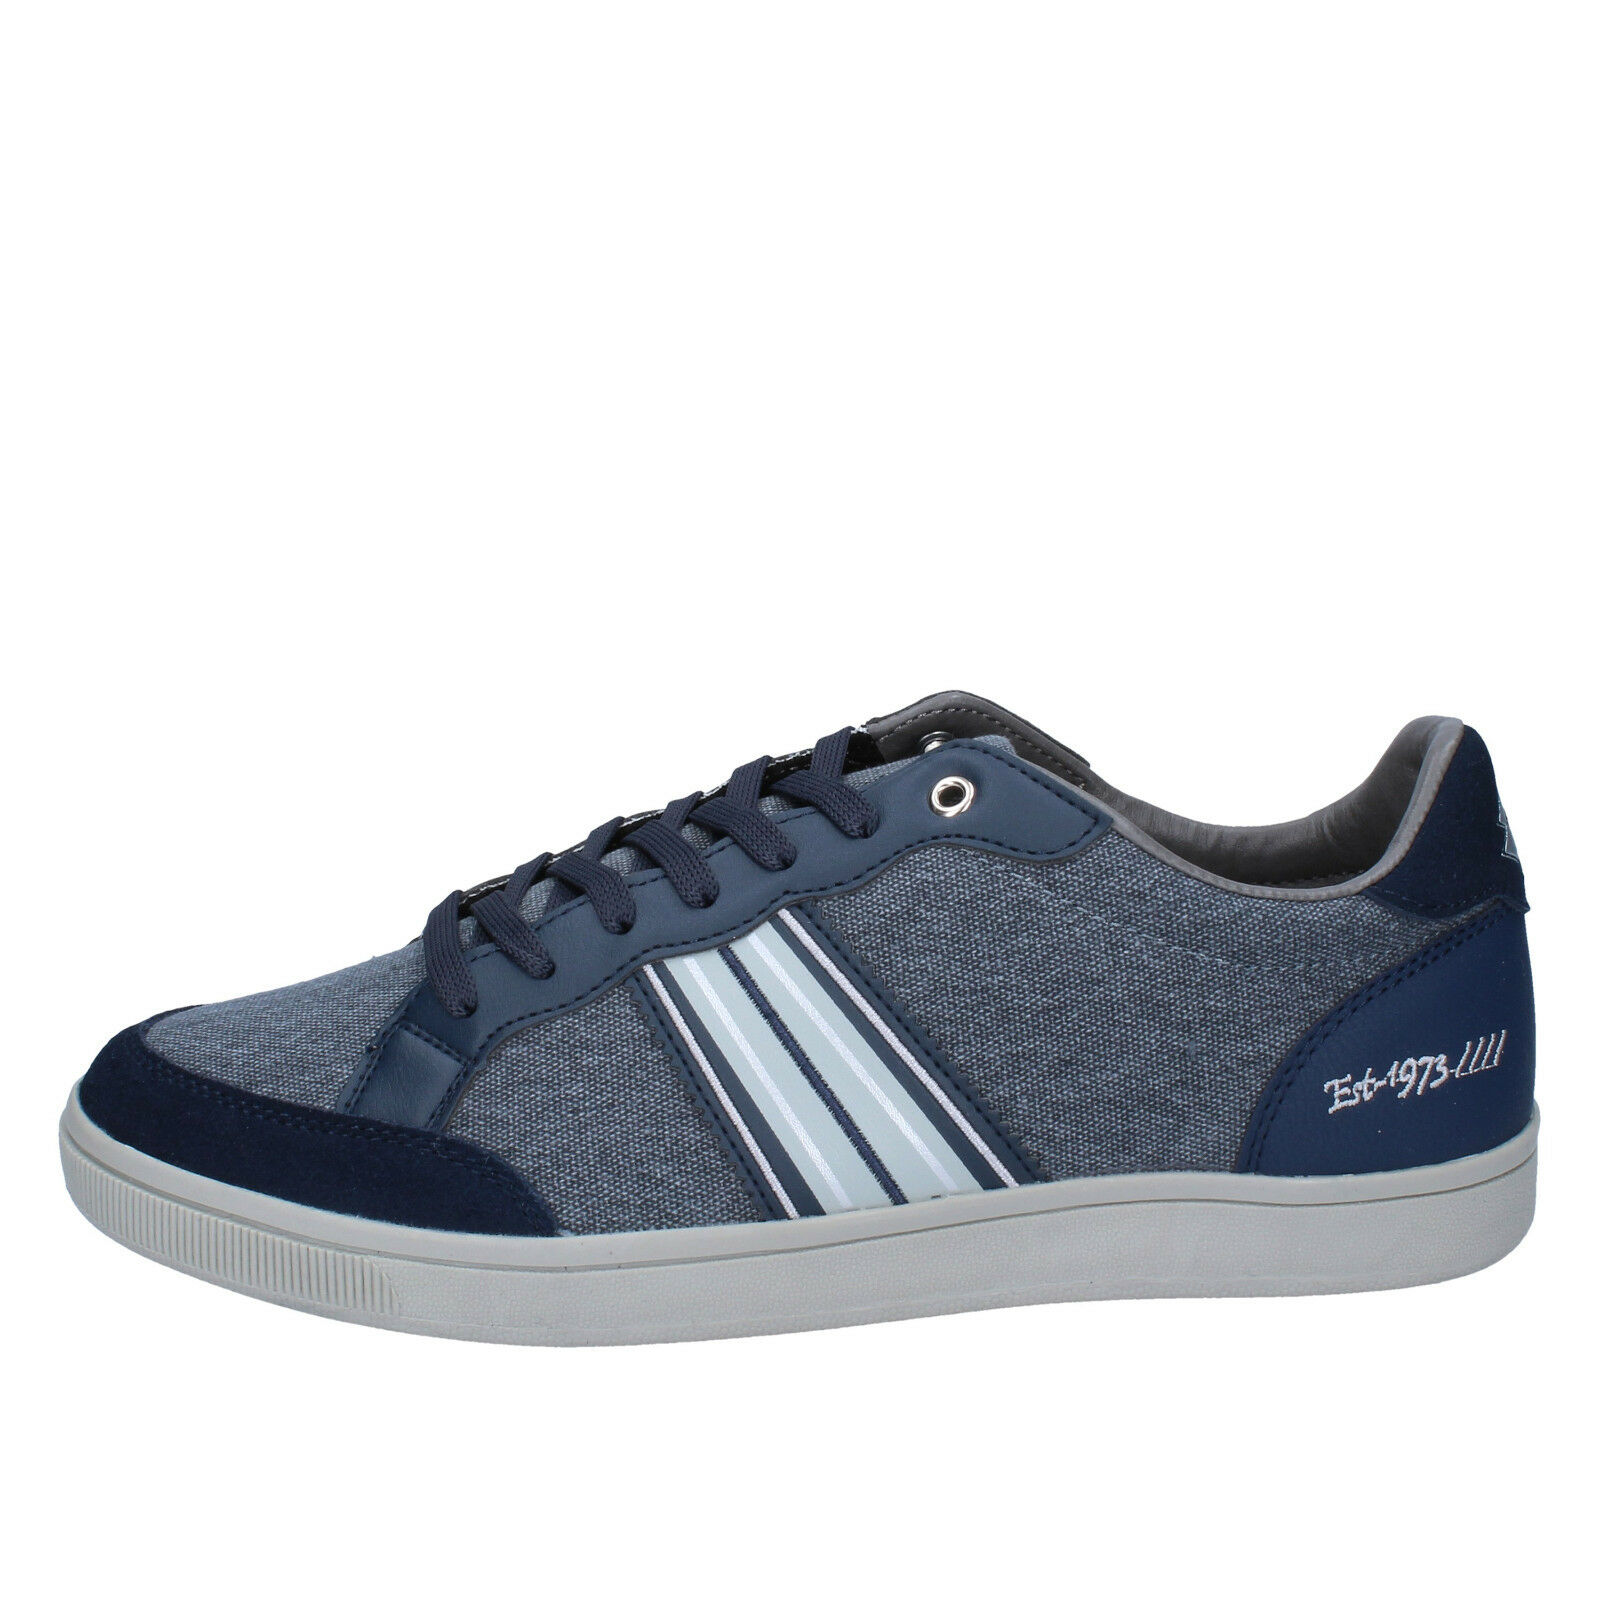 Herren schuhe LOTTO 42 sneakers blau grau textil BY843-42